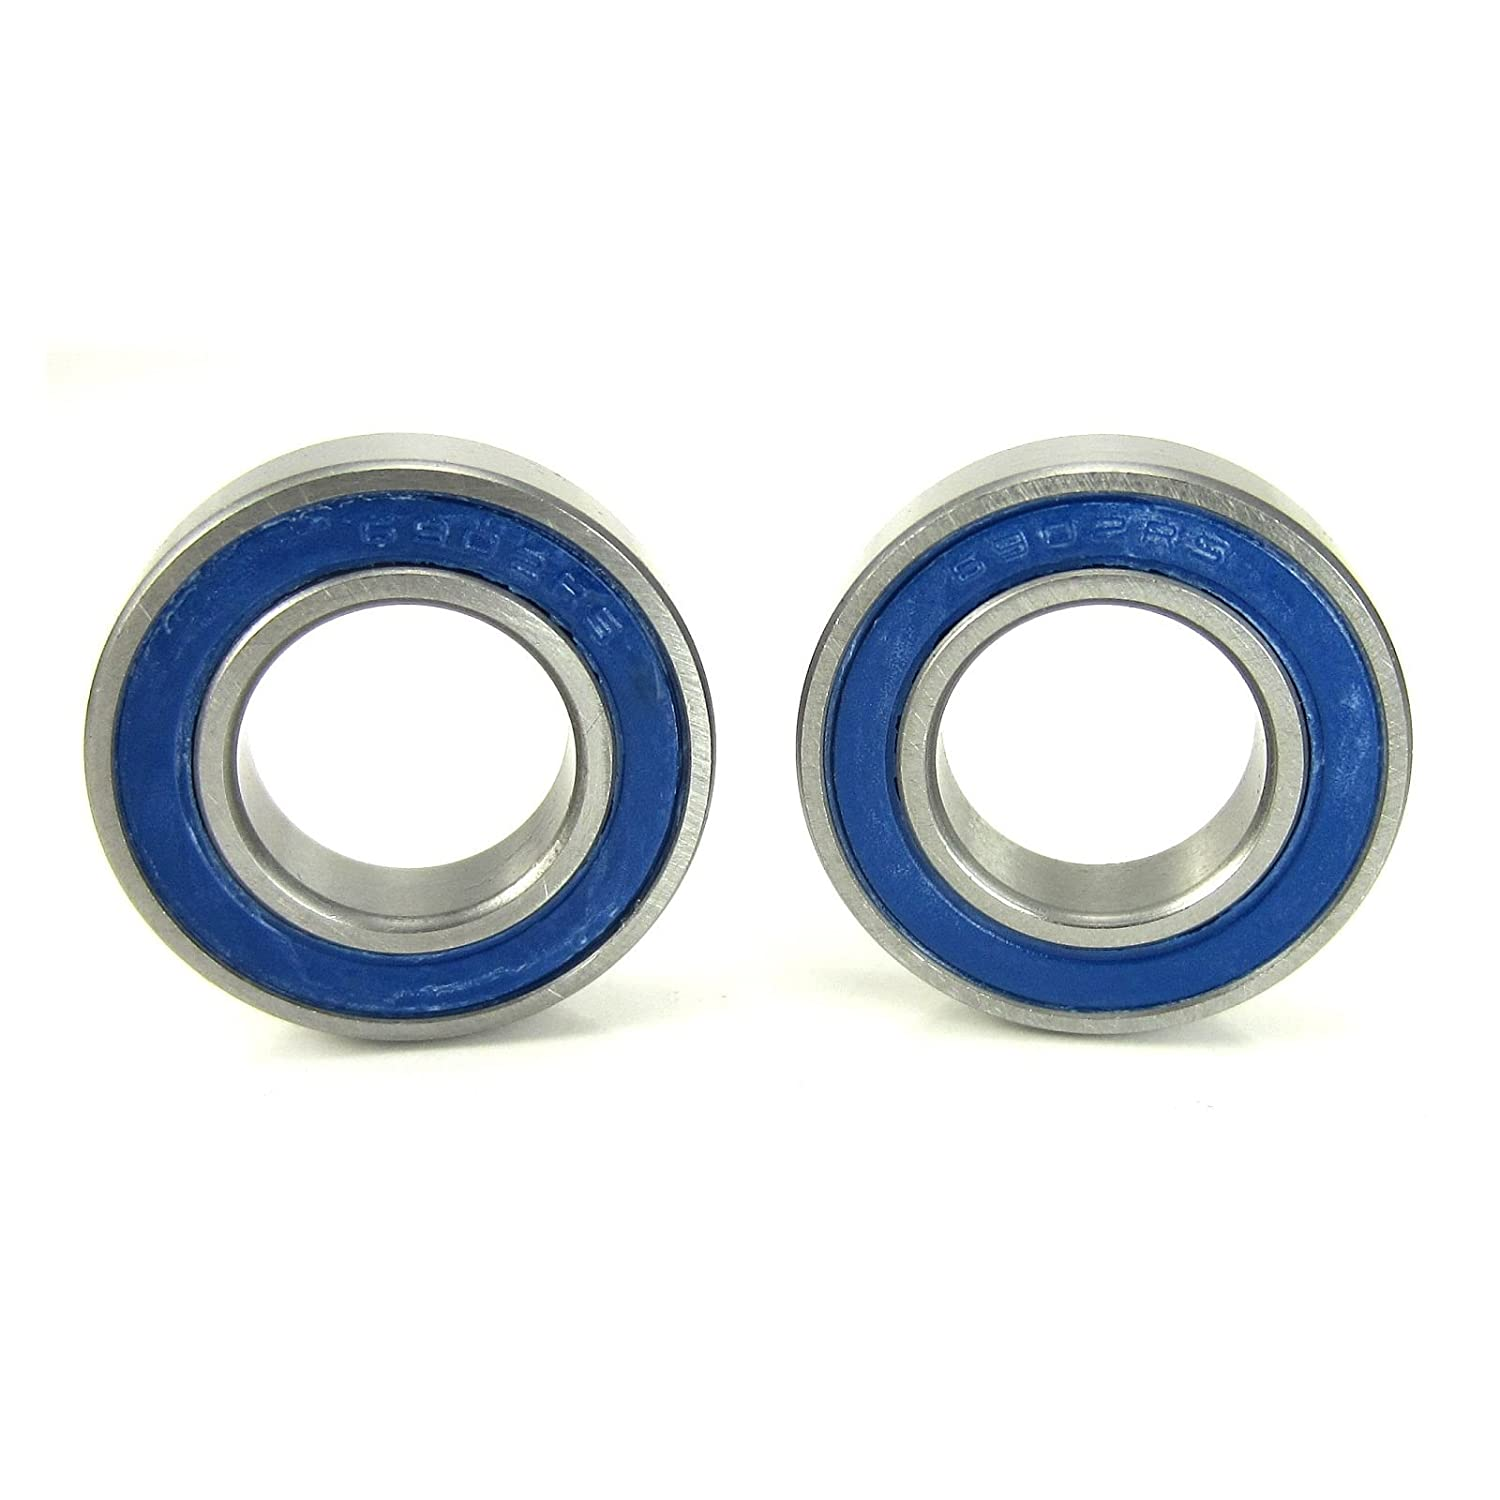 15x28x7mm Precision Ball Bearings ABEC 3 Blue Rubber Seals (2) TRB RC